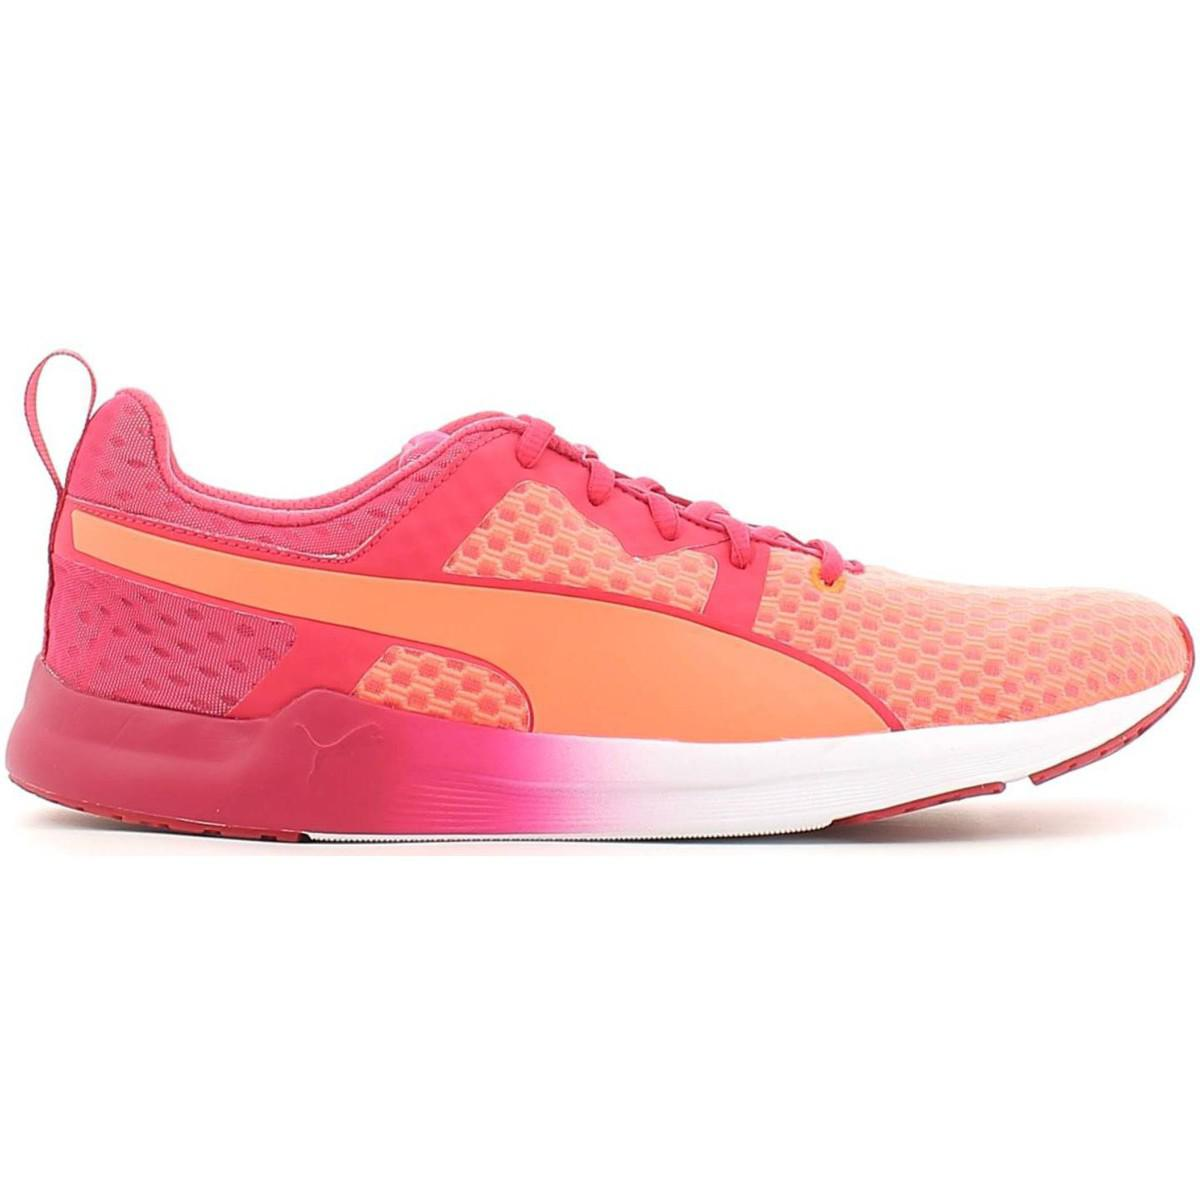 bcb49b3a429485 Puma 188558 Sport Shoes Women Women s Trainers In Pink in Pink - Lyst